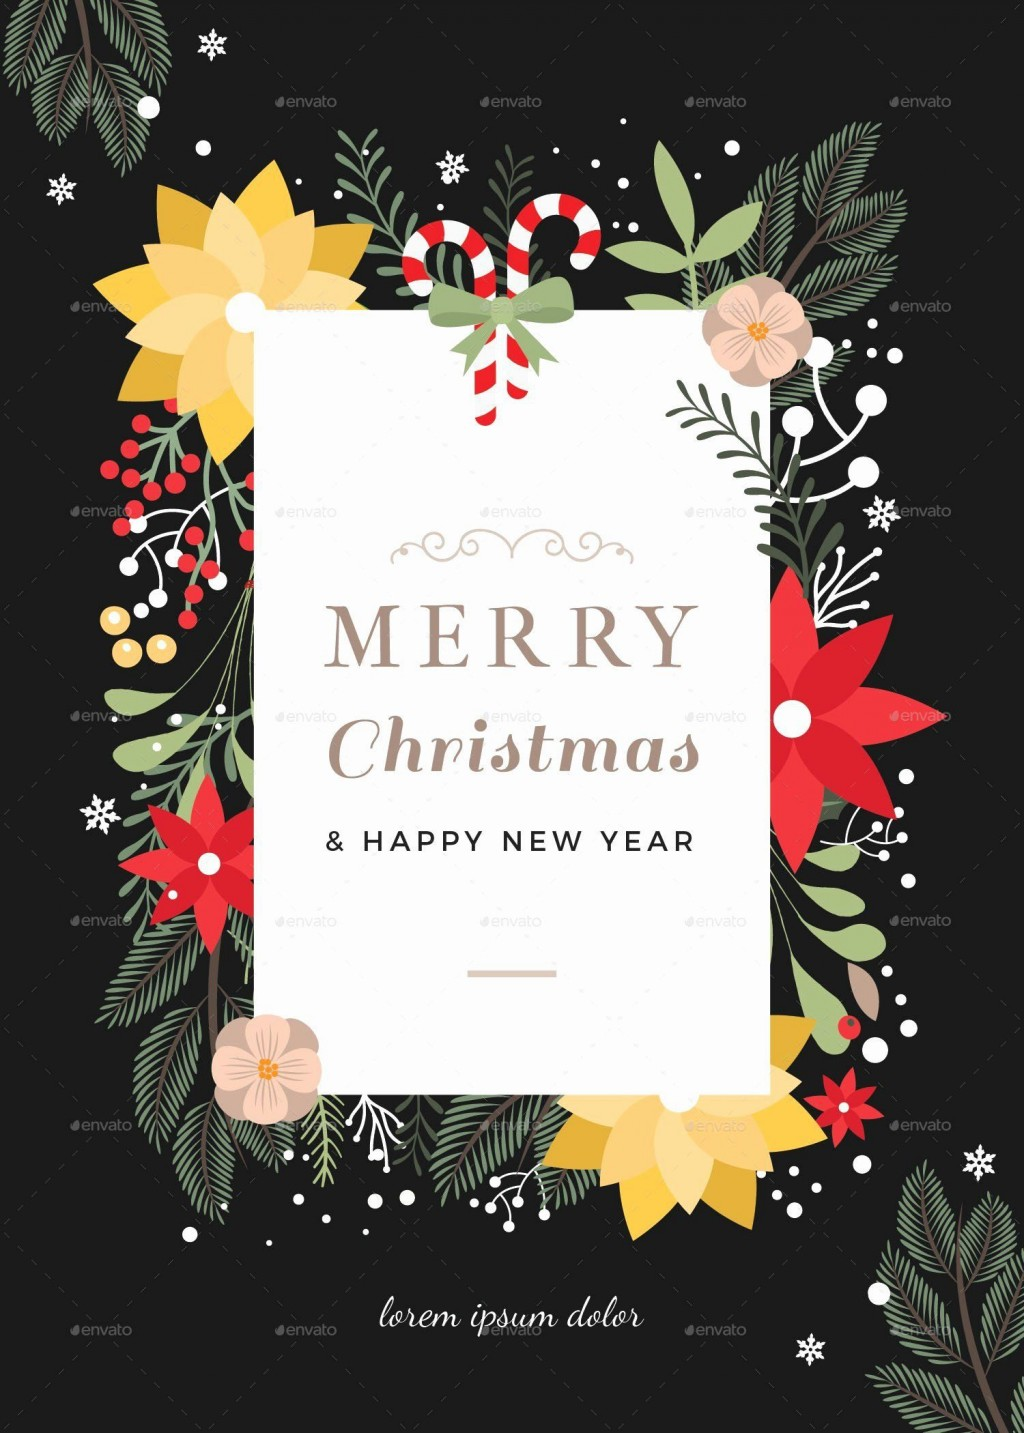 003 Phenomenal Christma Card Template Free Download Photo  Xma PlaceLarge